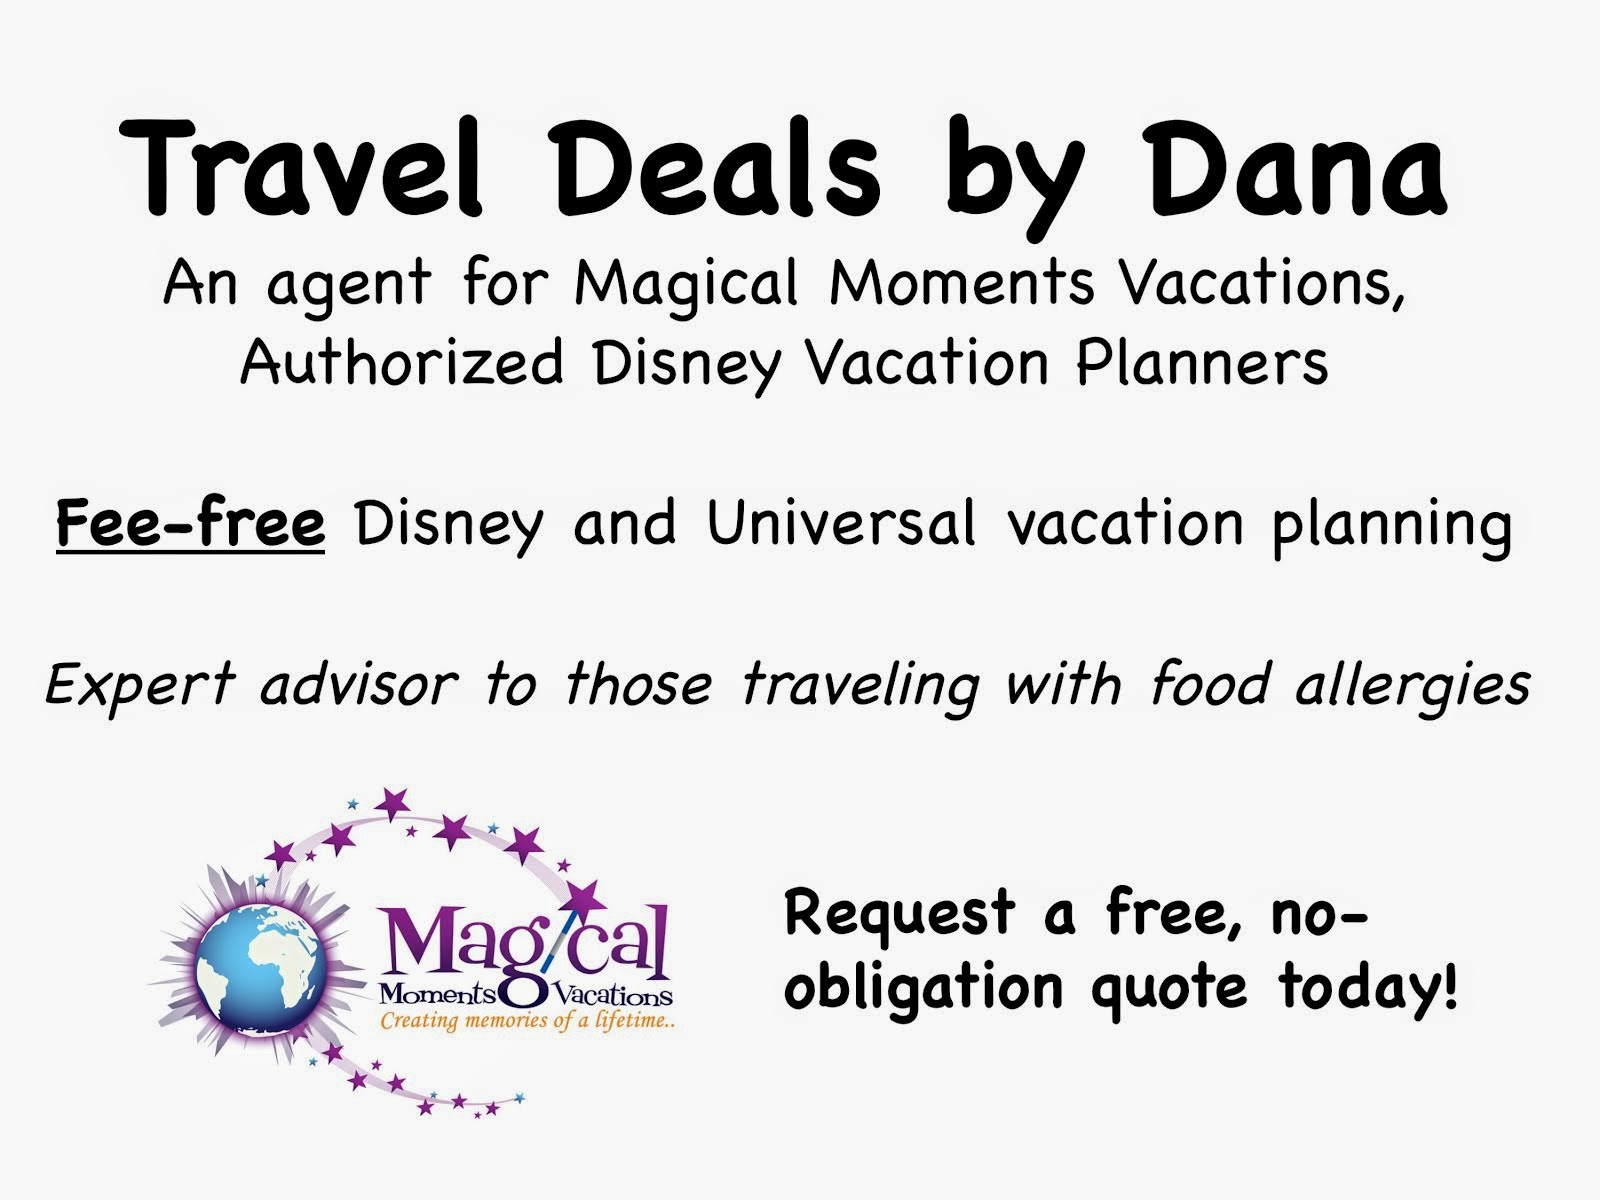 Travel Deals by Dana